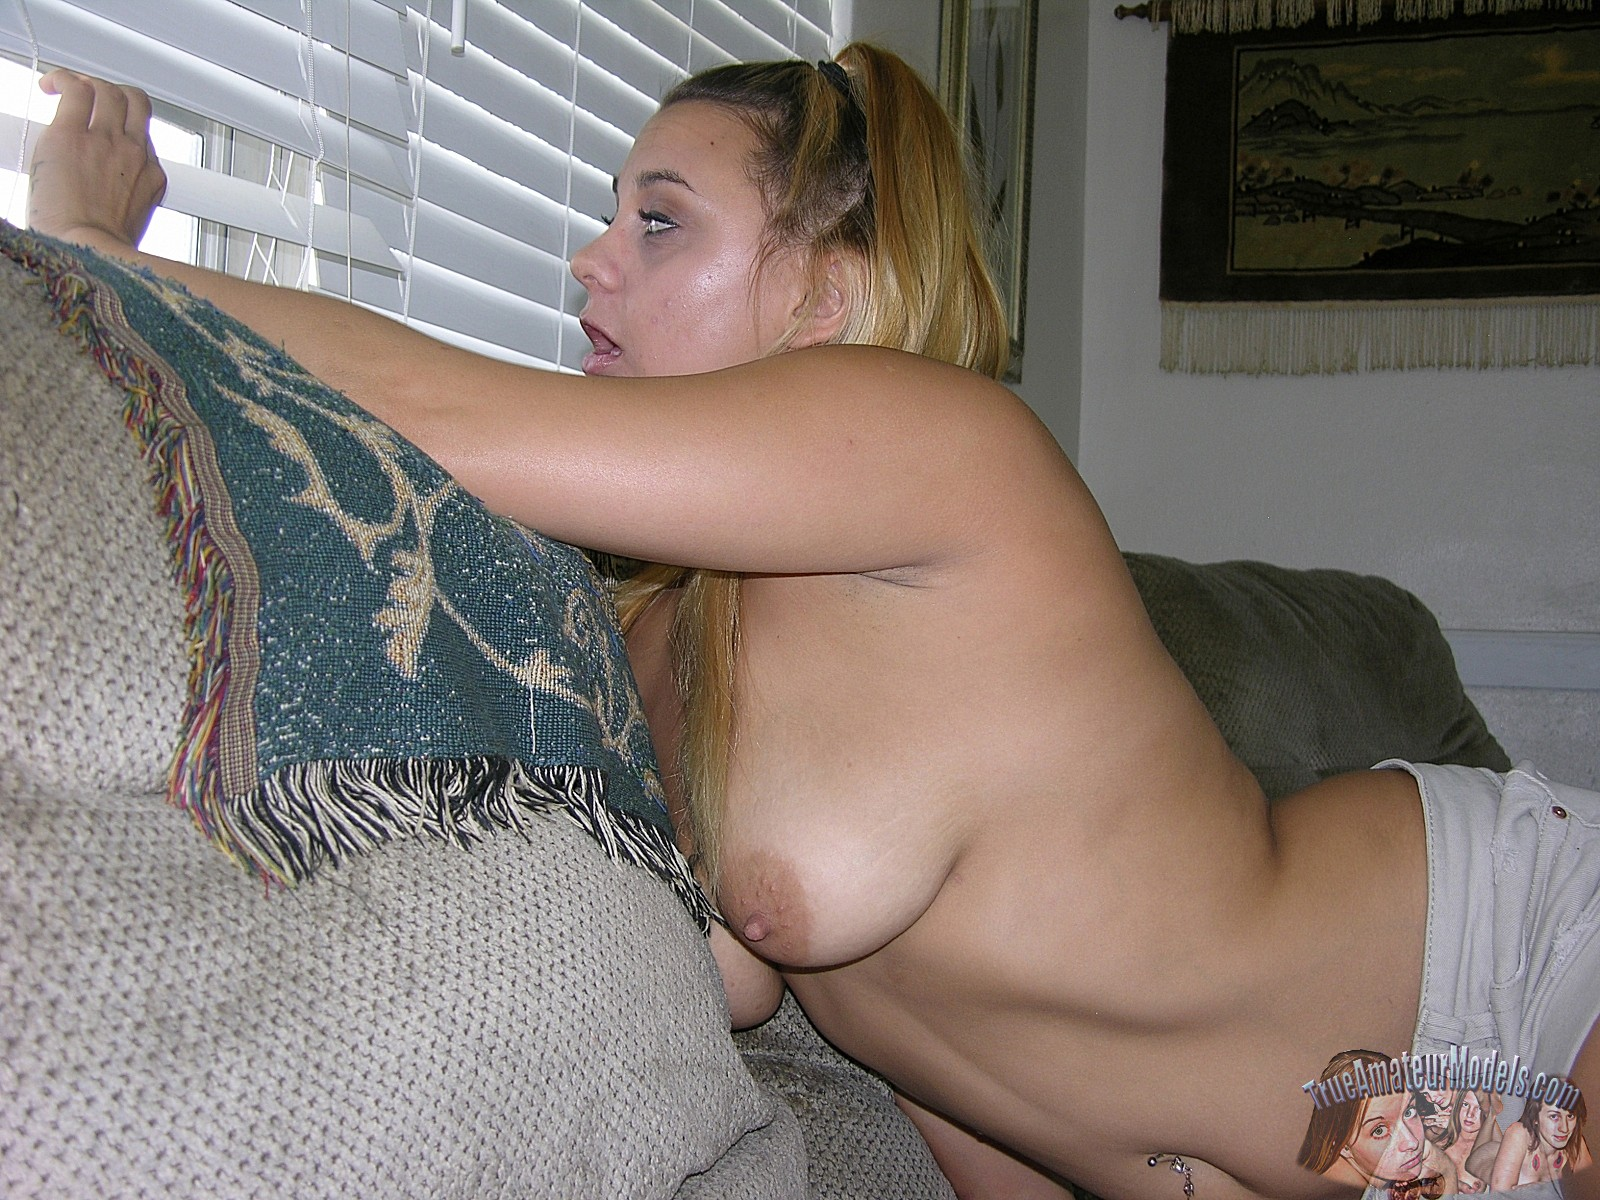 nude latina True models amateur